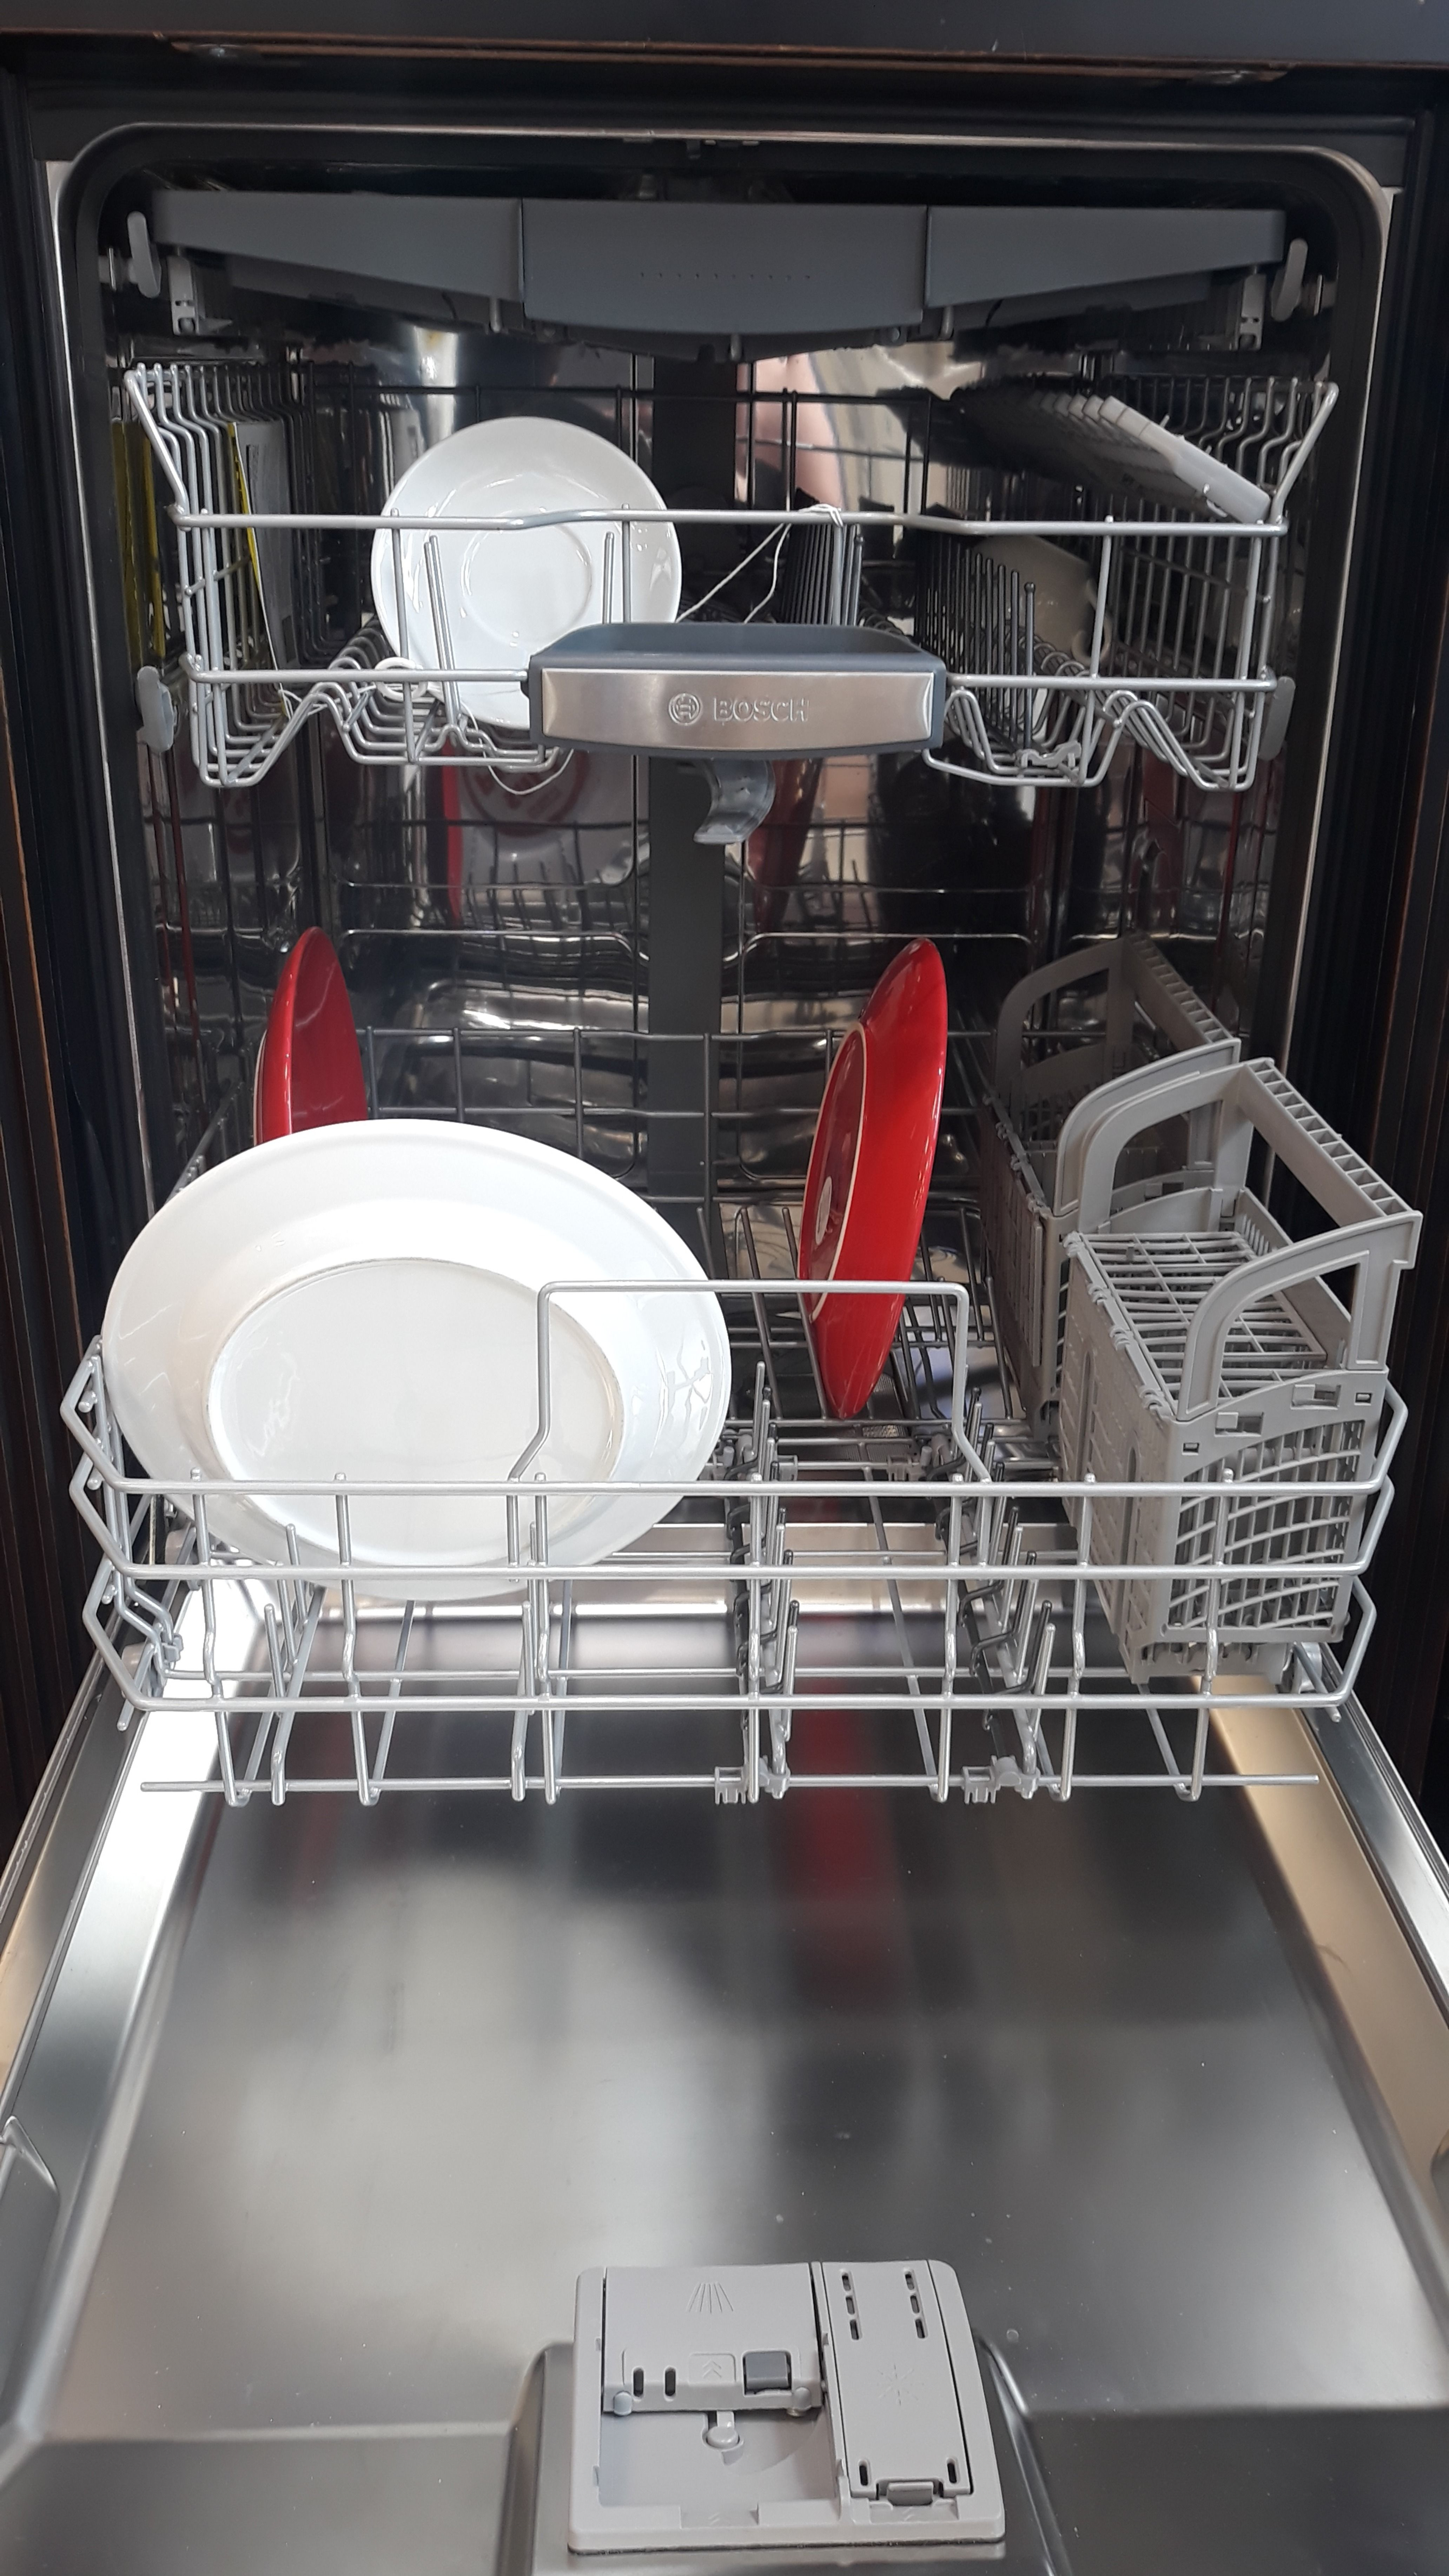 How To Install A Bosch Dishwasher - YouTube